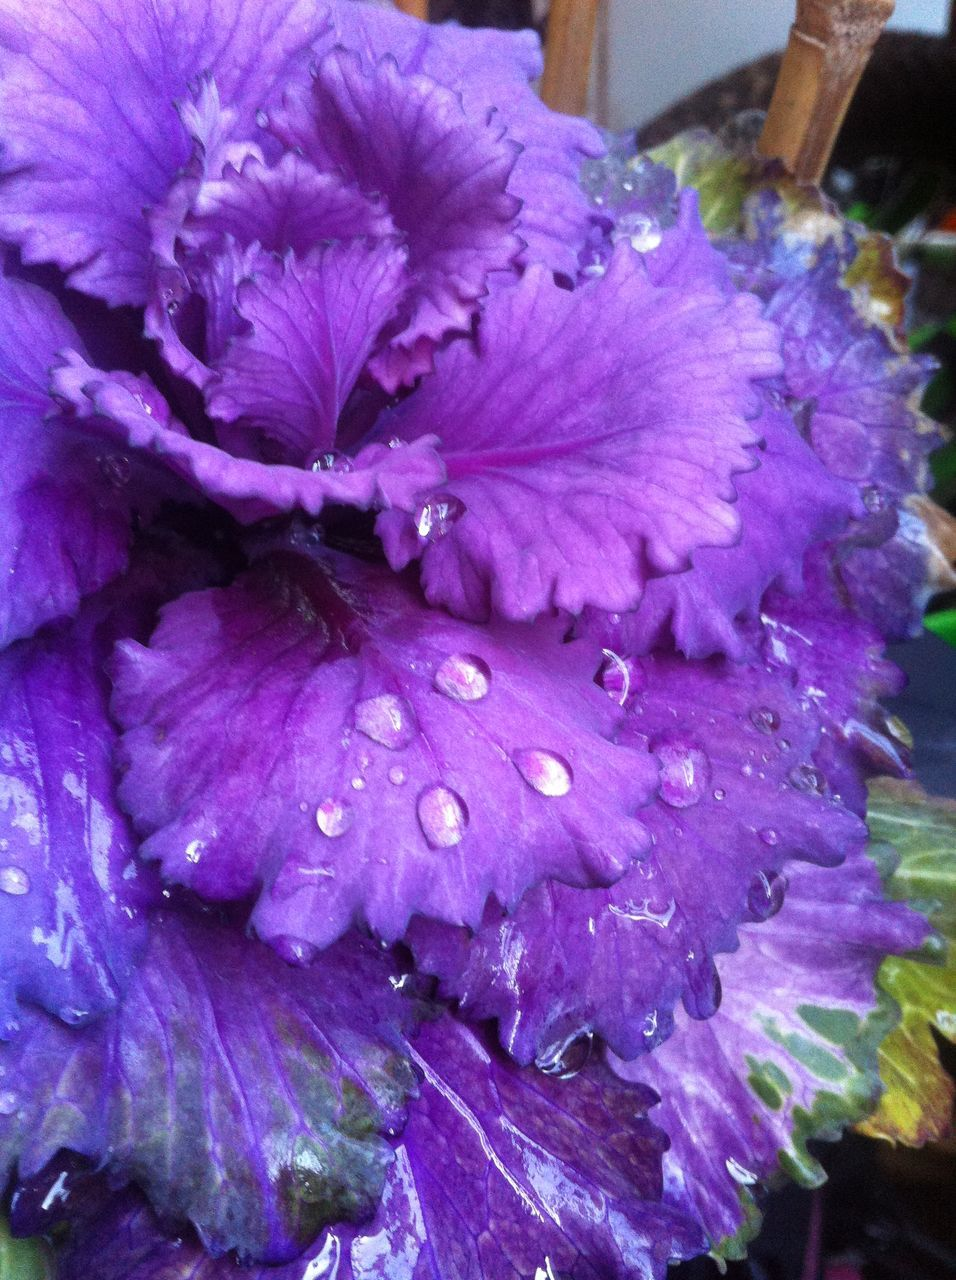 purple, flower, drop, beauty in nature, petal, fragility, no people, nature, wet, freshness, flower head, close-up, outdoors, growth, day, water